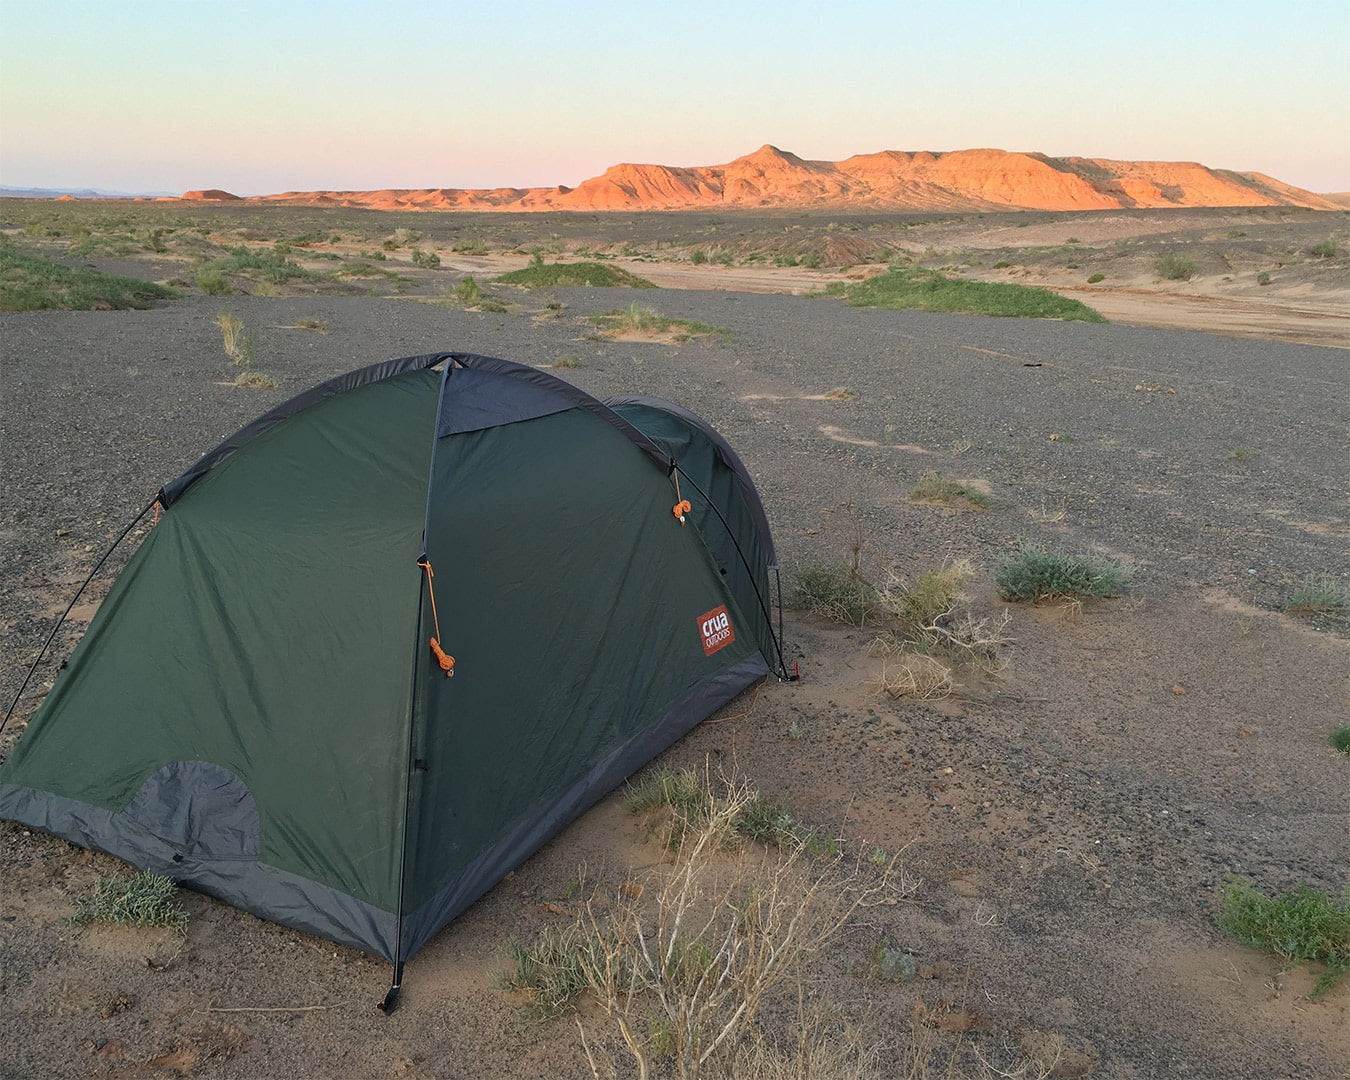 Max's tent during his expedition crossing the Gobi desert